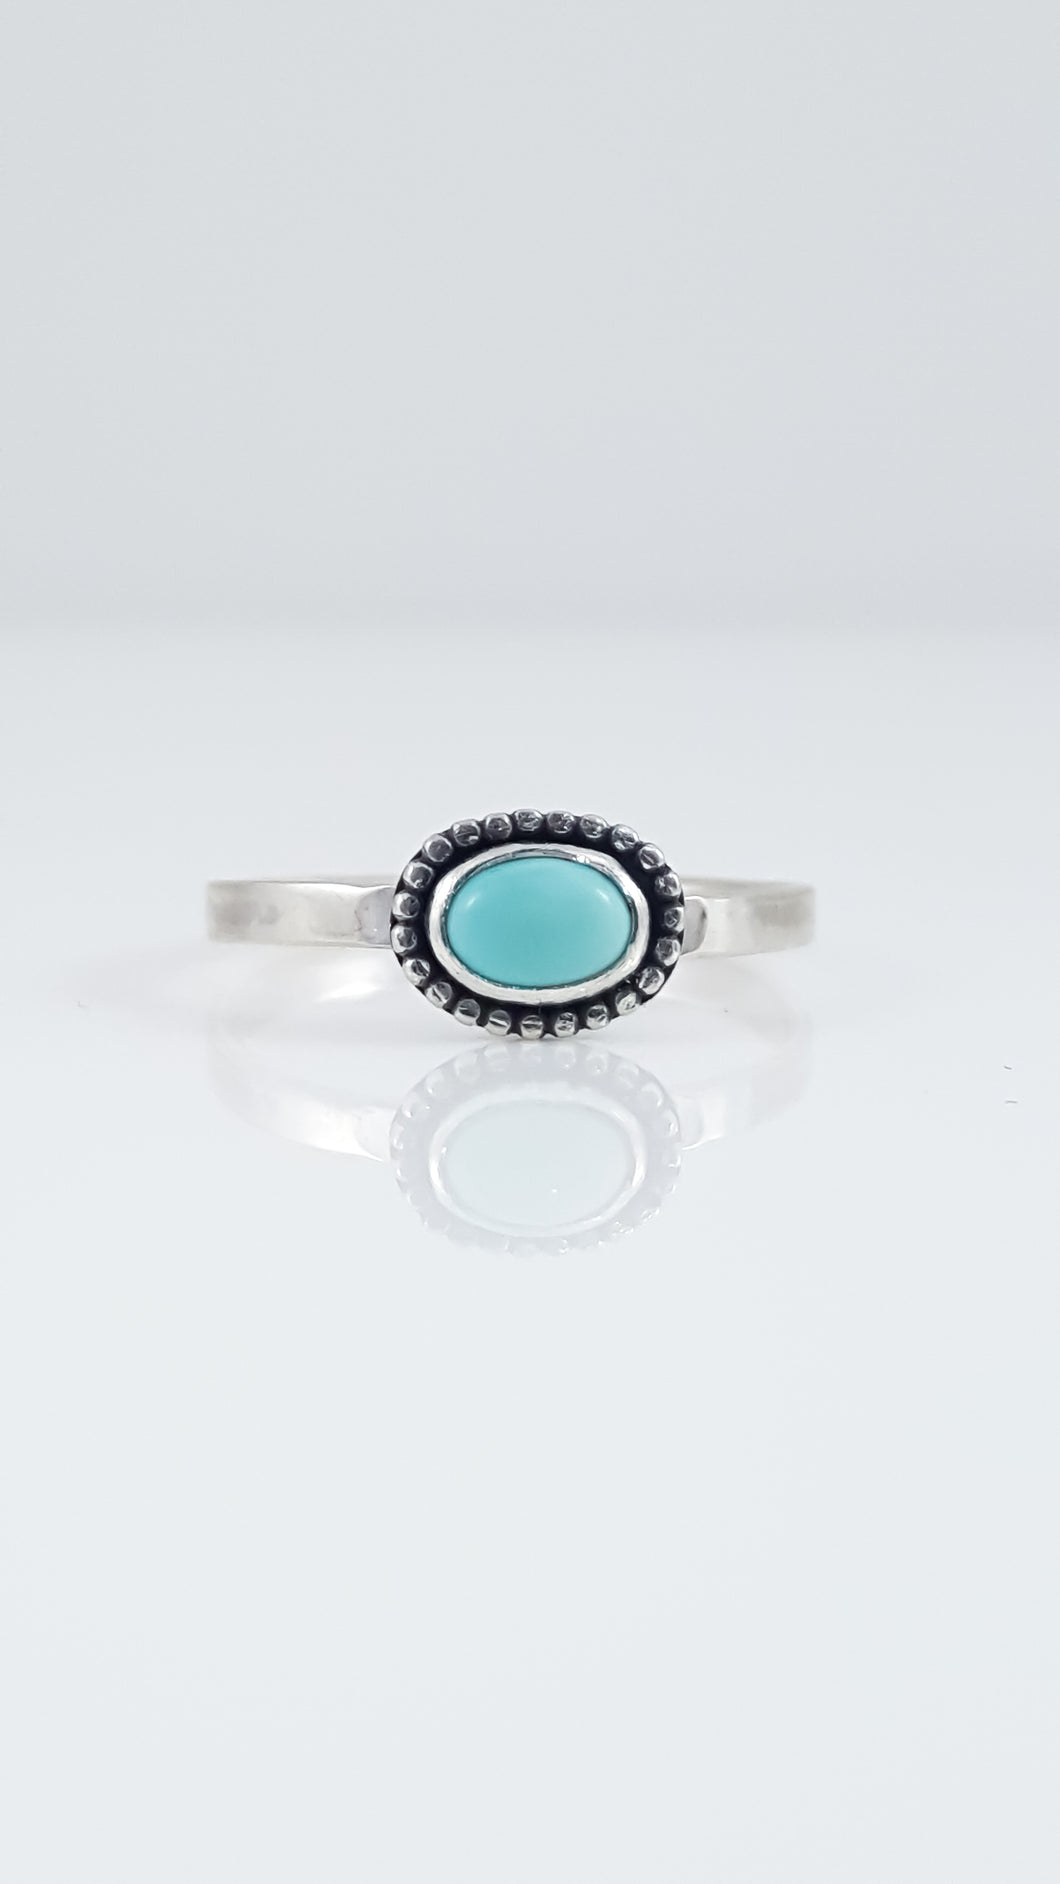 Dainty Sleeping Beauty Turquoise Ring